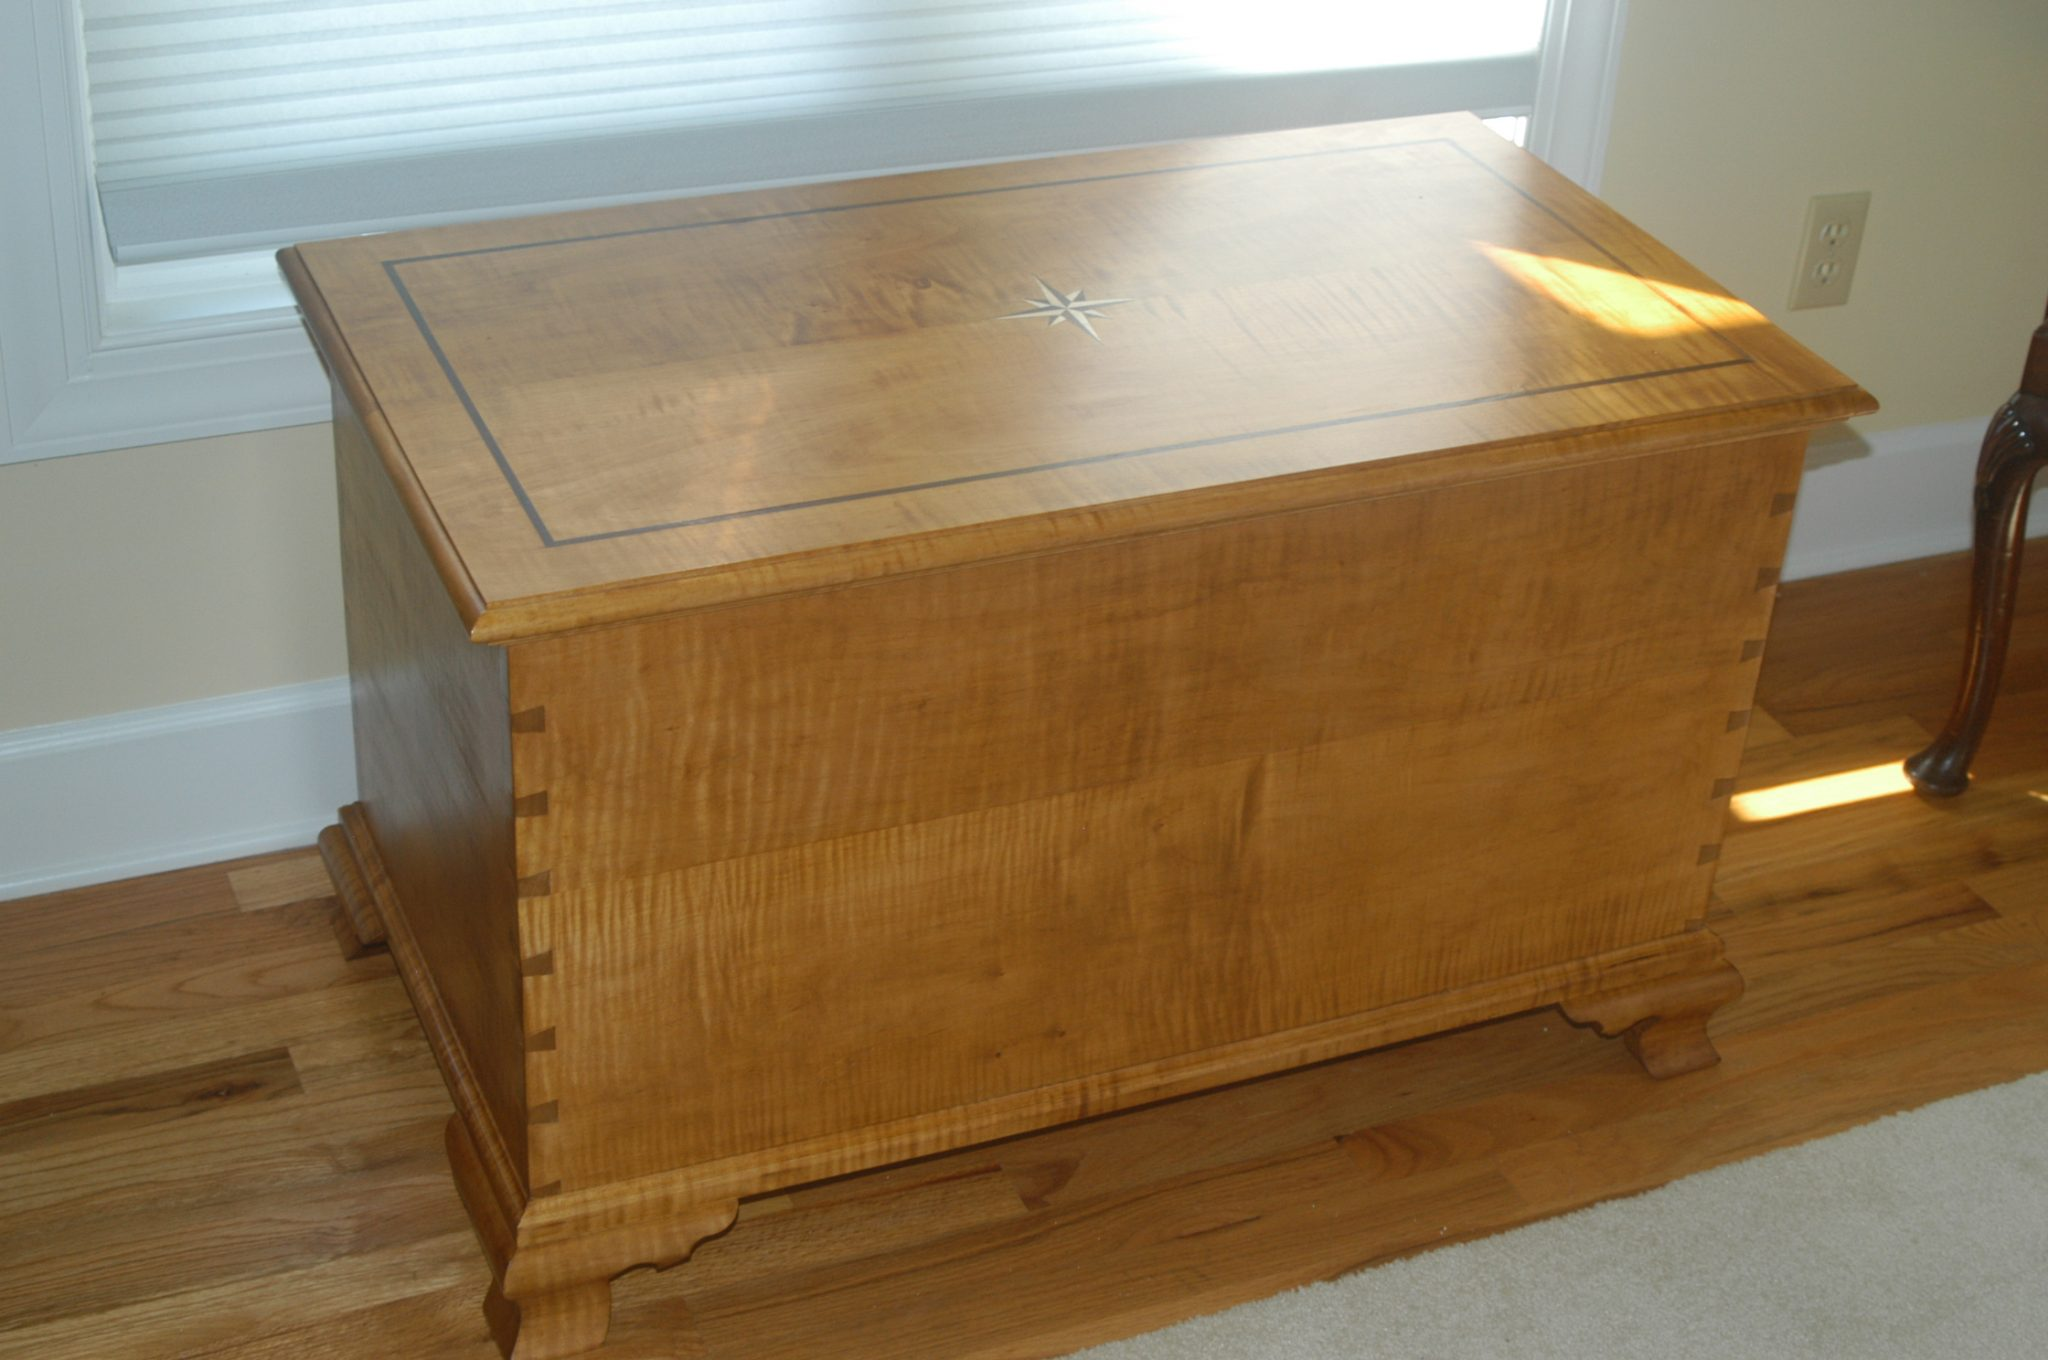 Tiger Maple Blanket Chest, Cedar lined with Compass and Border Inlay in Top and Ogee Feet